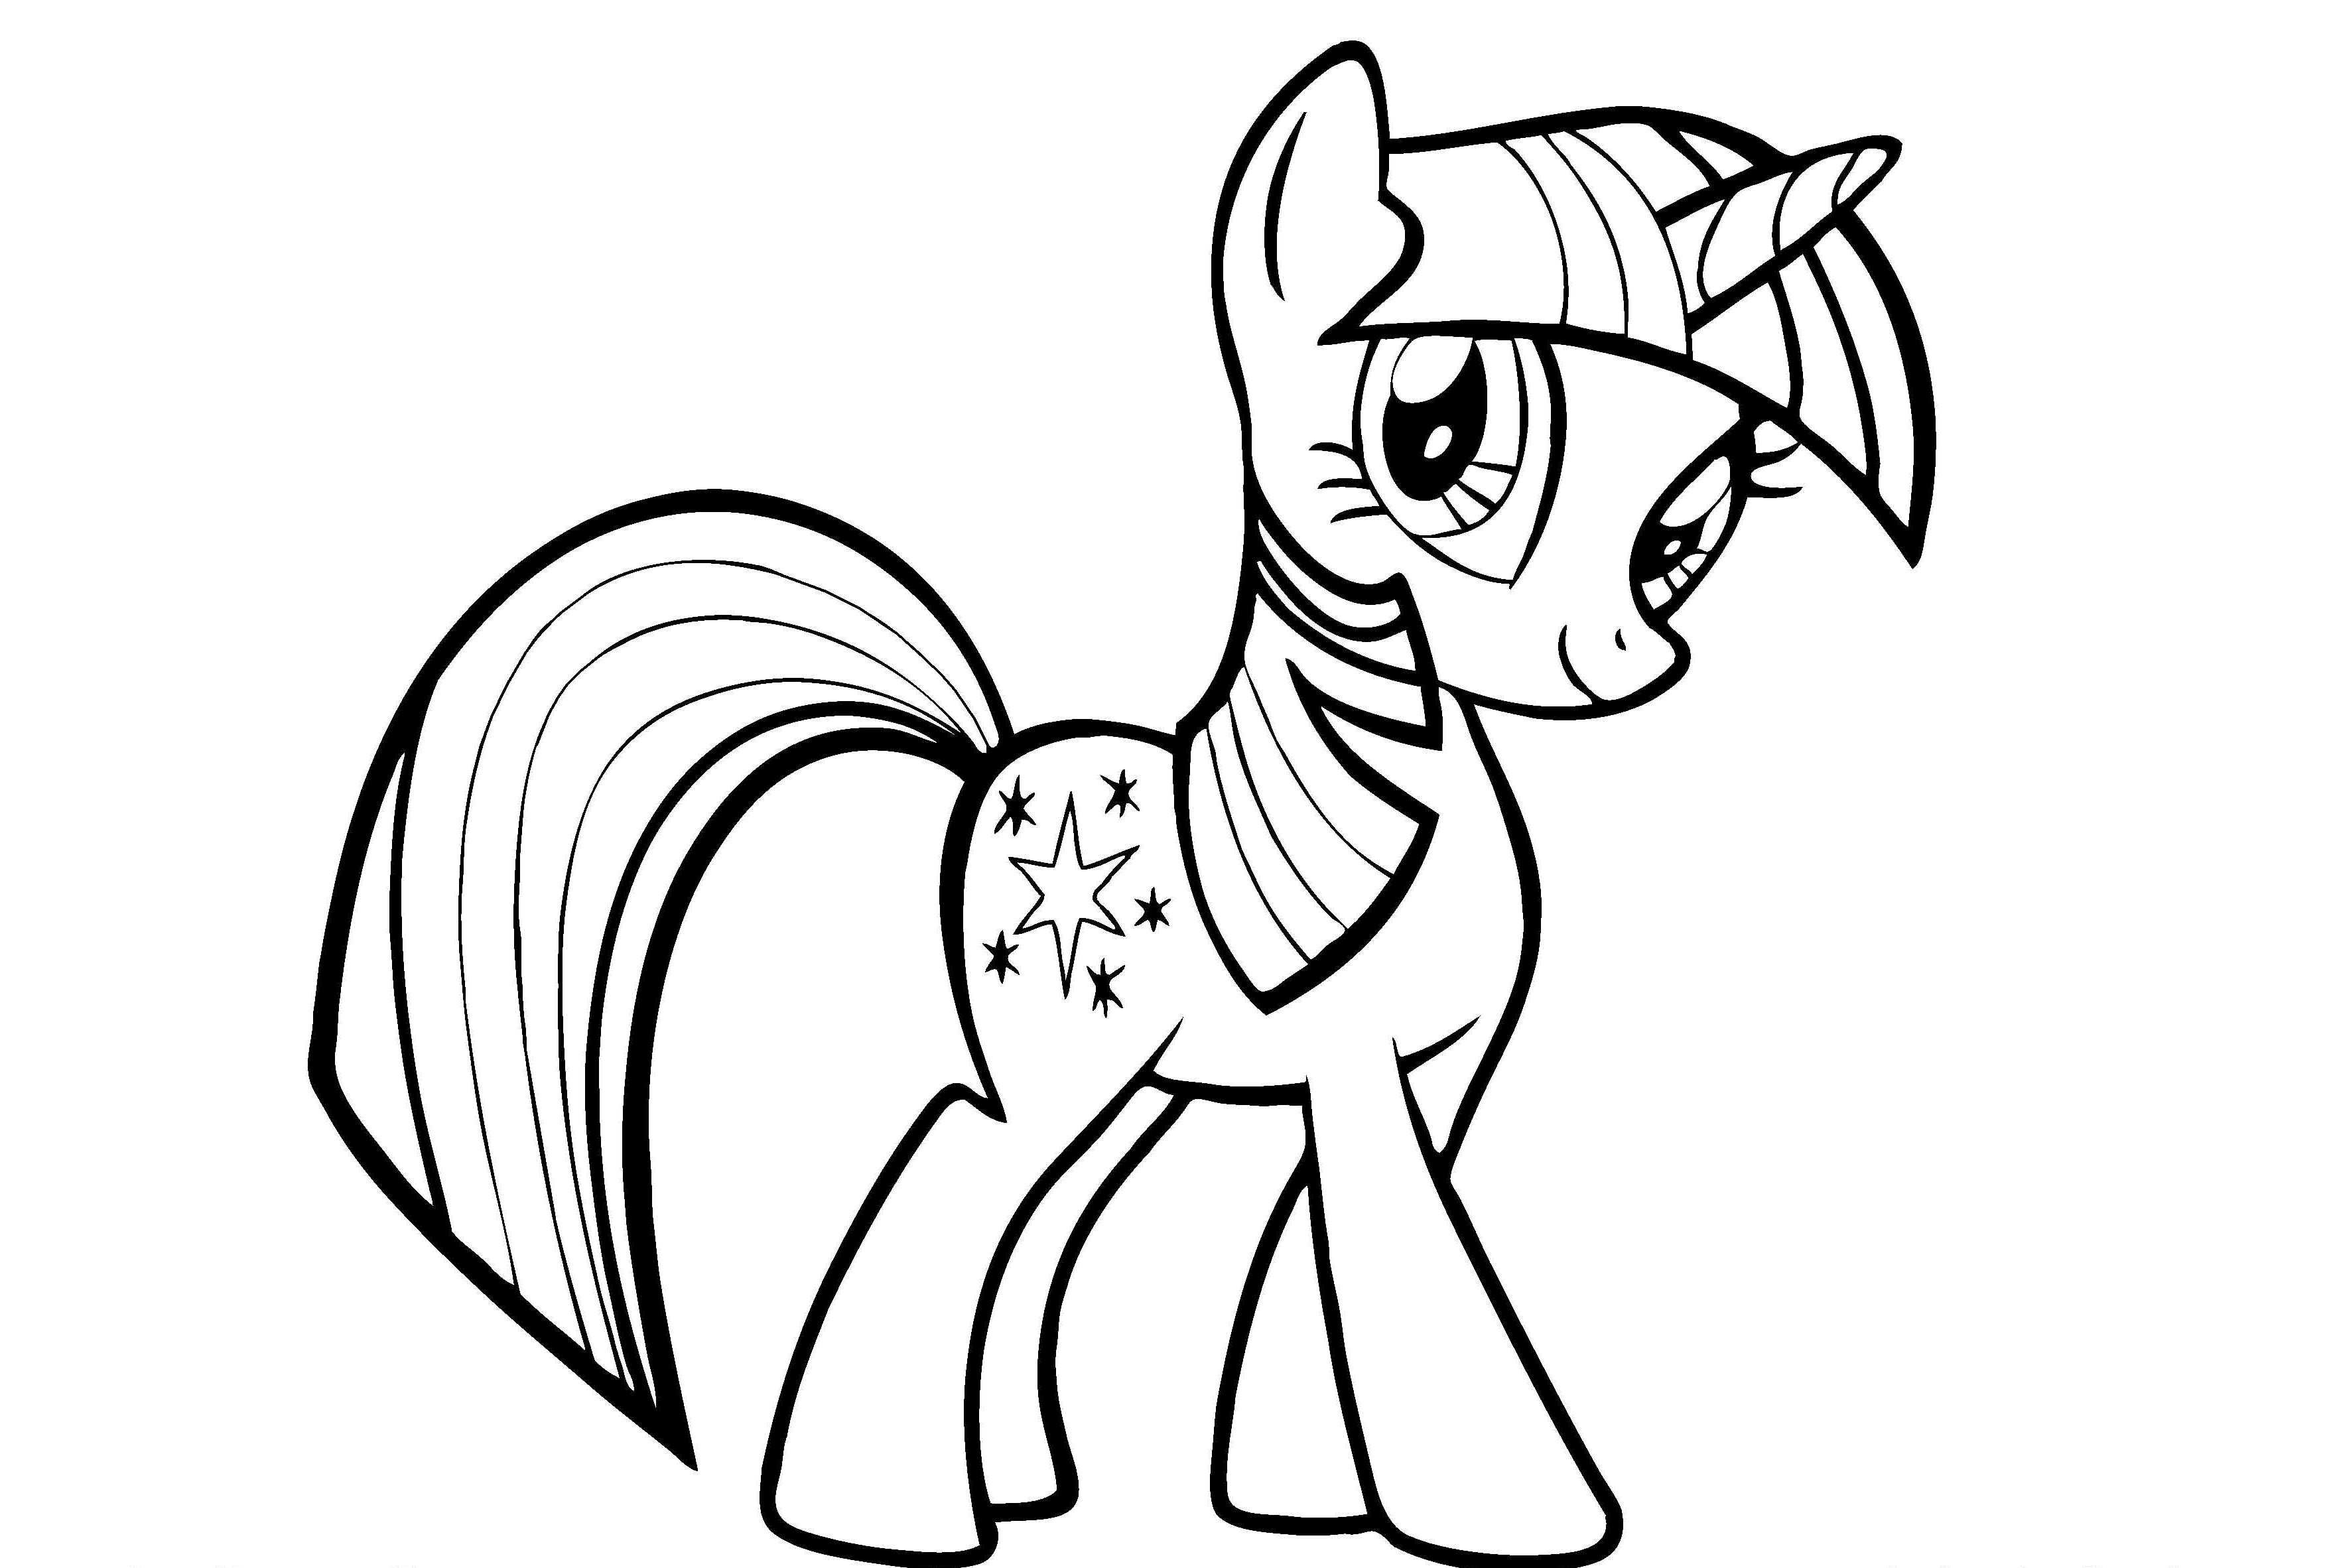 My Little Pony Twilight Sparkle Coloring Pages Through The Thousand Photos Online In Re Horse Coloring Pages My Little Pony Coloring My Little Pony Printable